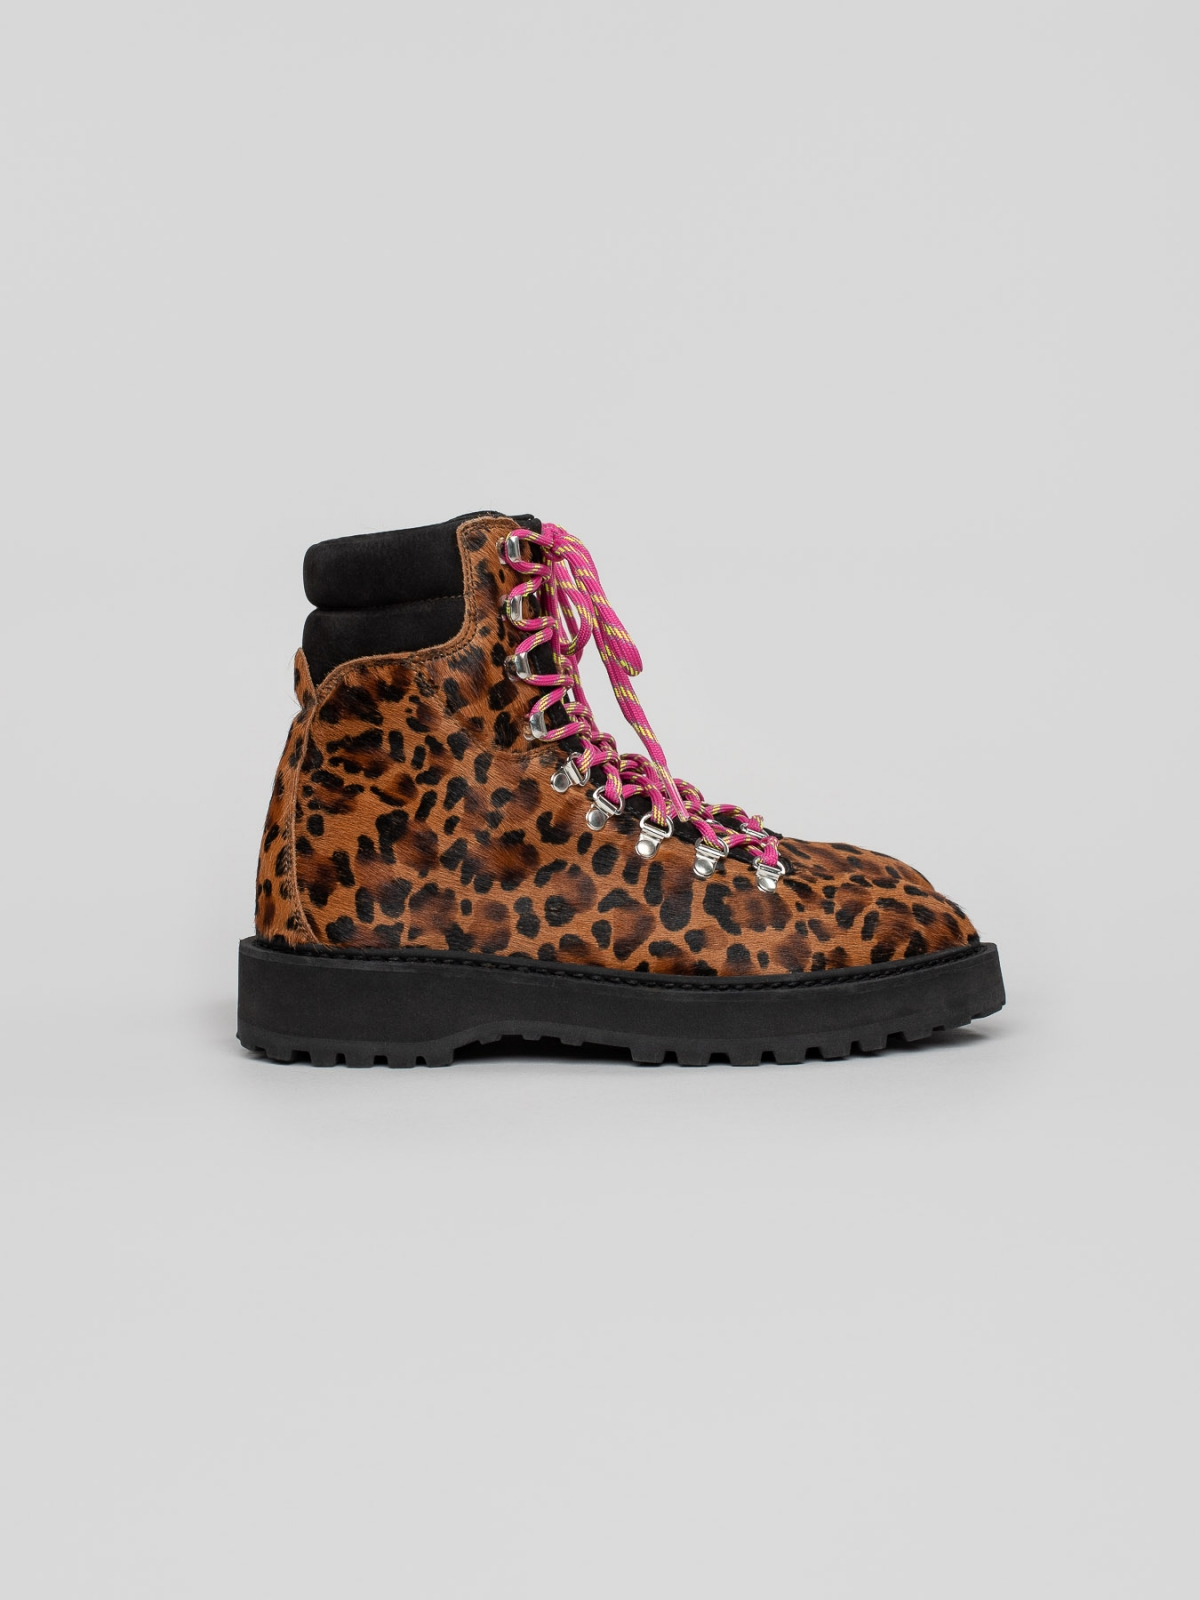 Diemme Monfumo Leopard are the perfect winter boots